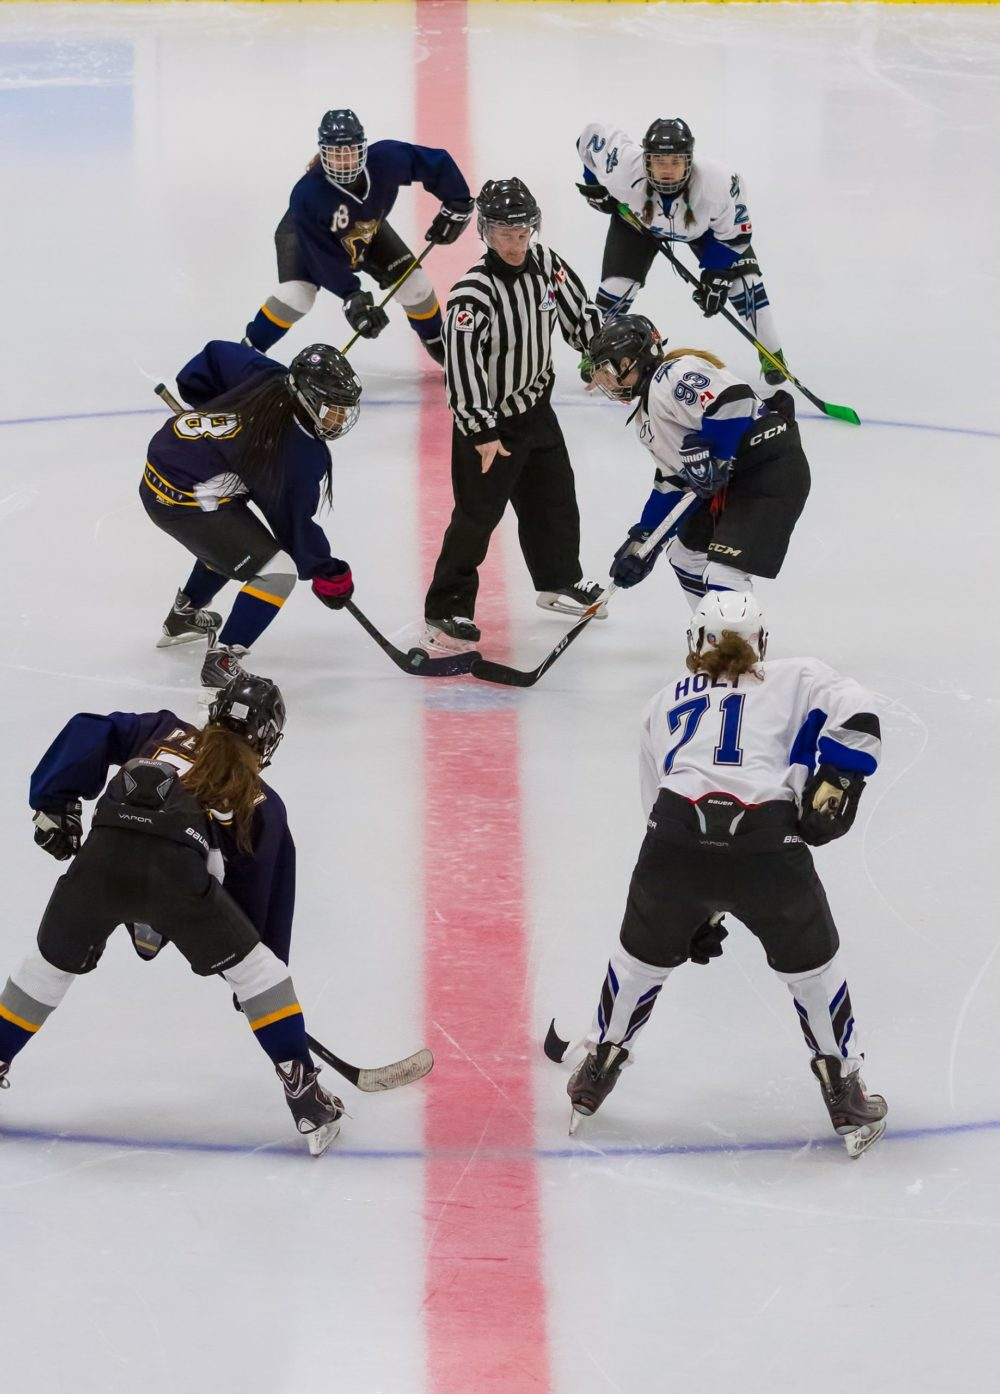 Two women's' ice hockey teams line up at the faceoff circle